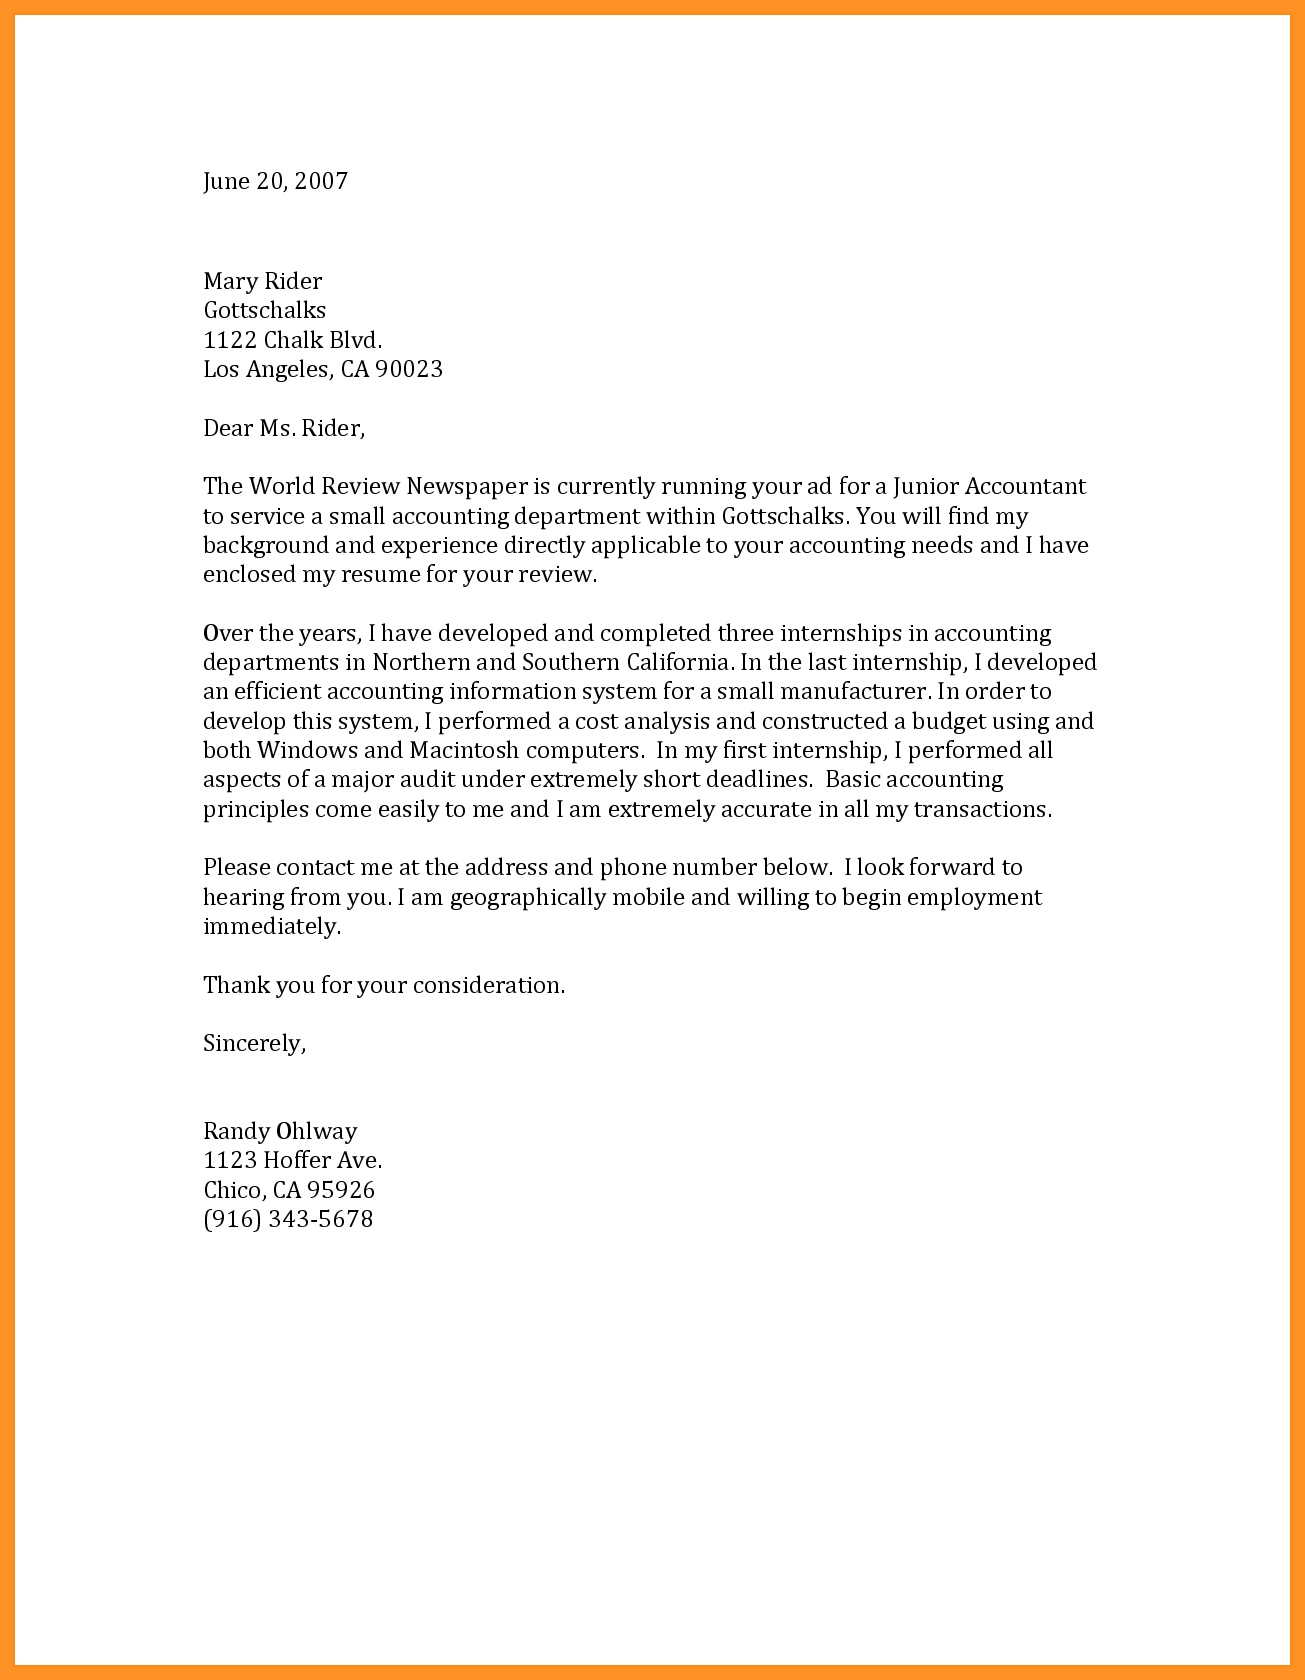 Resume Letter Sample For Job from img2.pngio.com